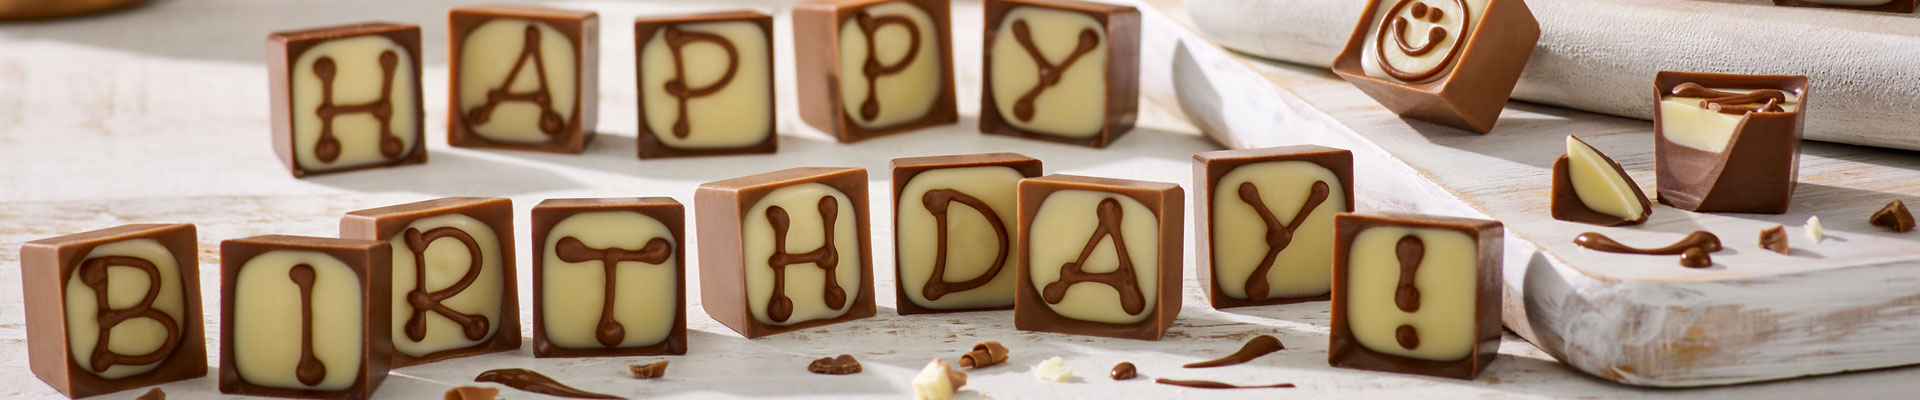 Personalised Iced Chocolate Gifts